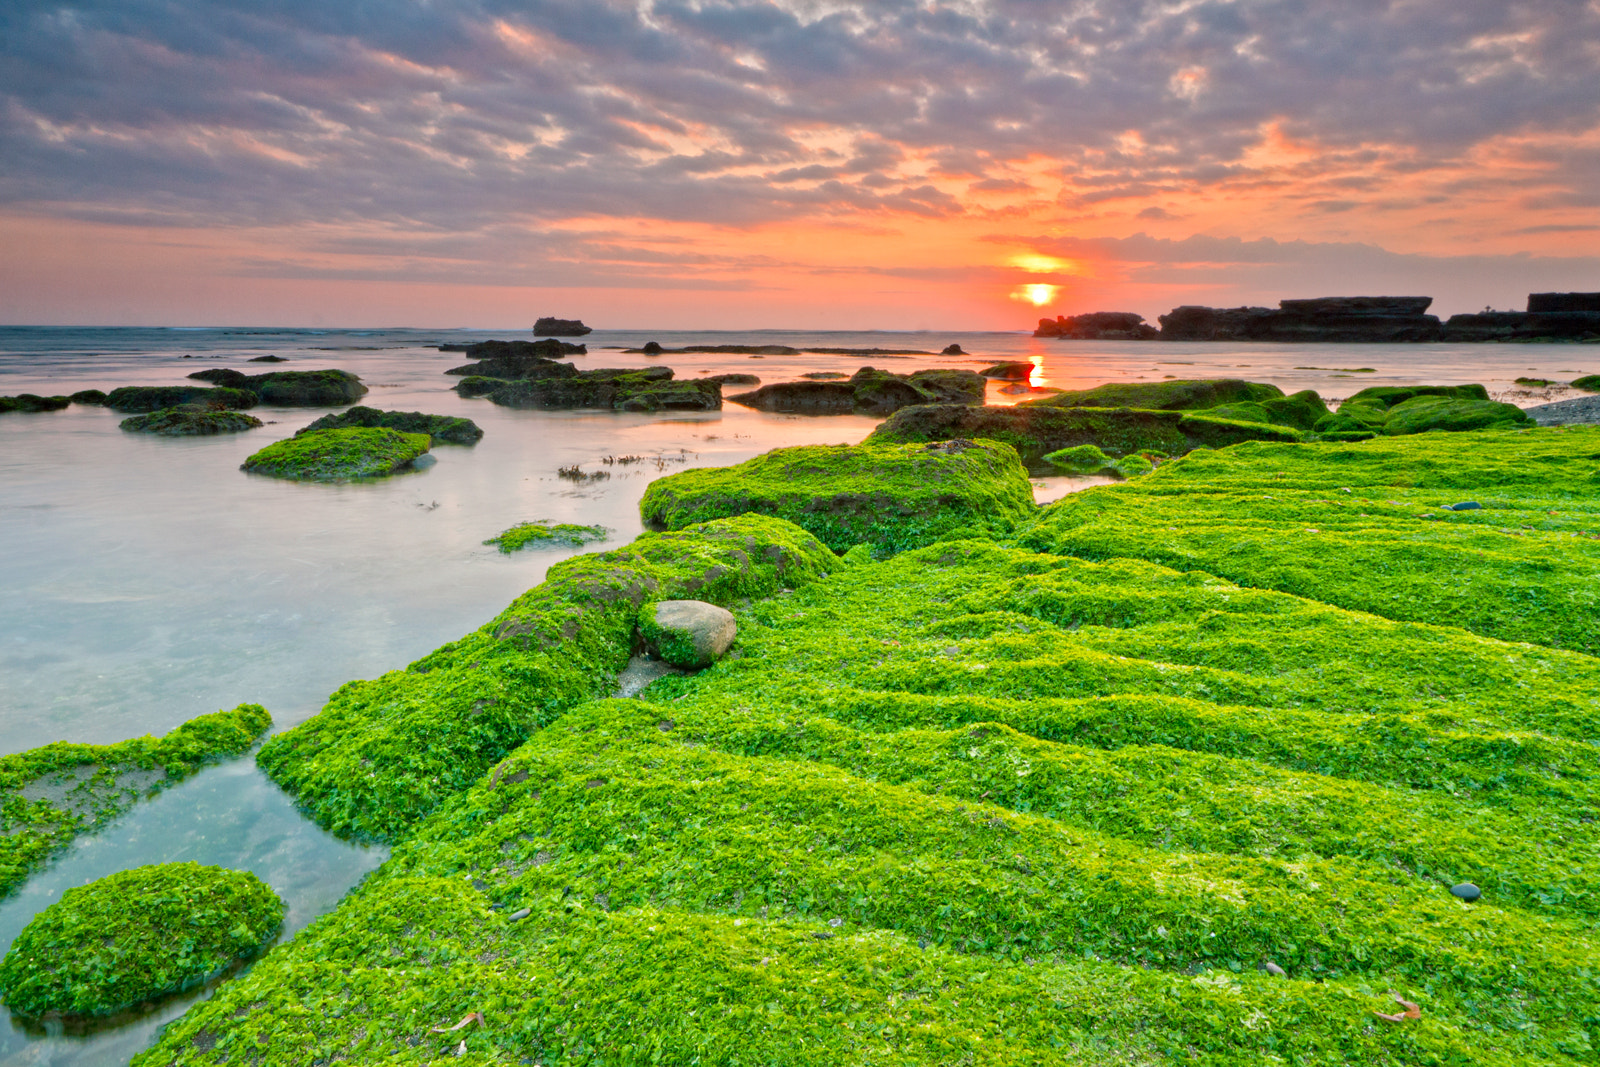 Photograph Sunset at Mengening Beach by Helminadia Ranford on 500px